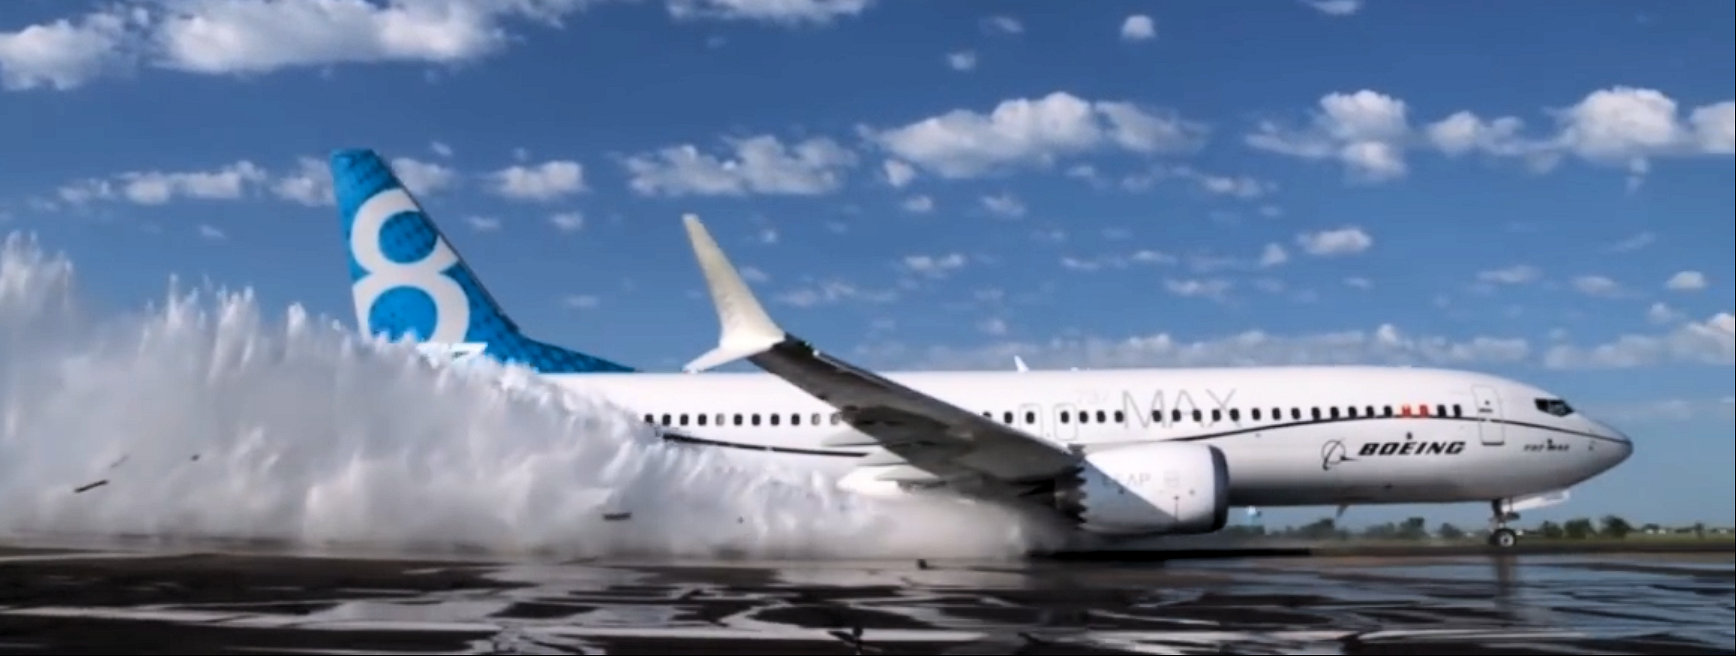 737 MAX Water spray testing